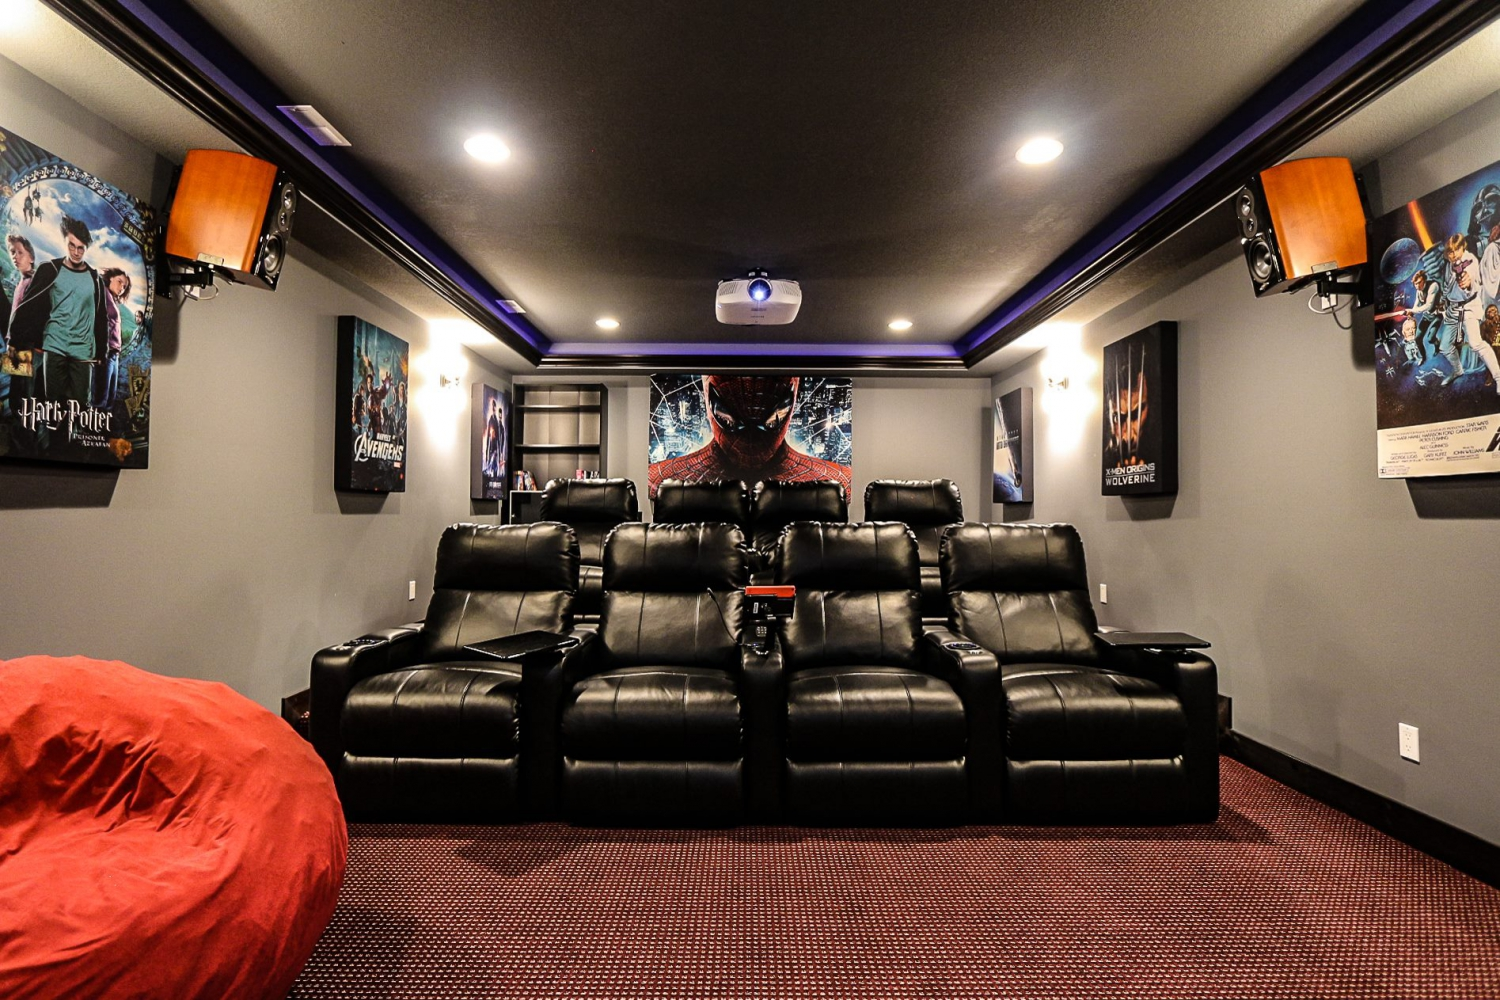 Marvelous Ht Design Easthampton Home Theater Seating Power Recline Unemploymentrelief Wooden Chair Designs For Living Room Unemploymentrelieforg